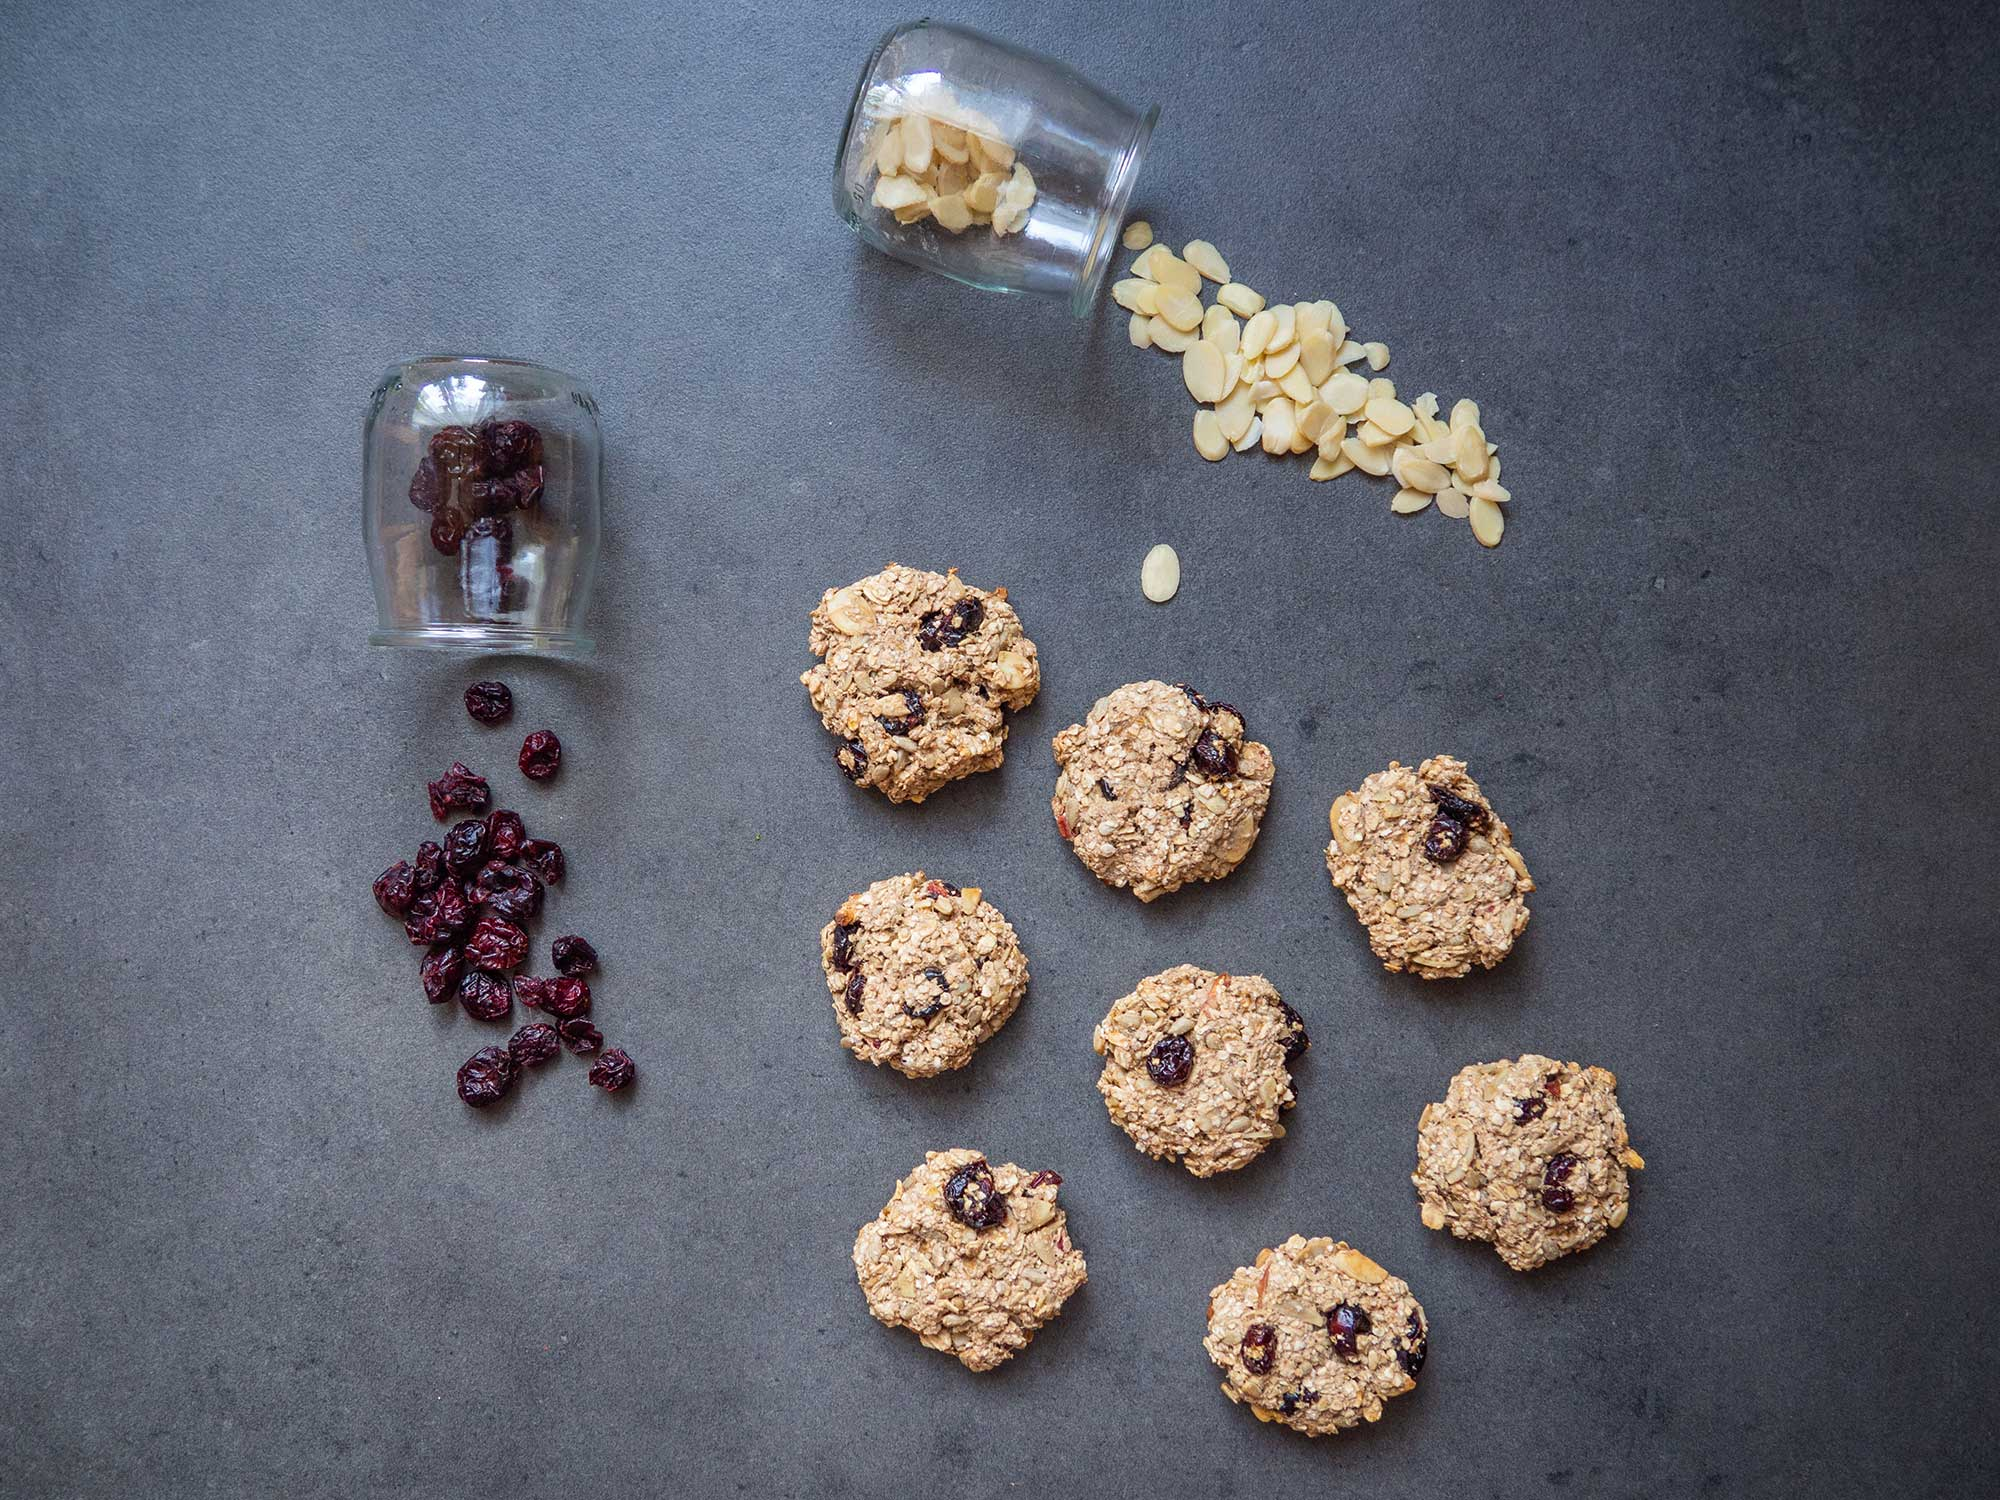 Oat cookies with cranberries and almonds